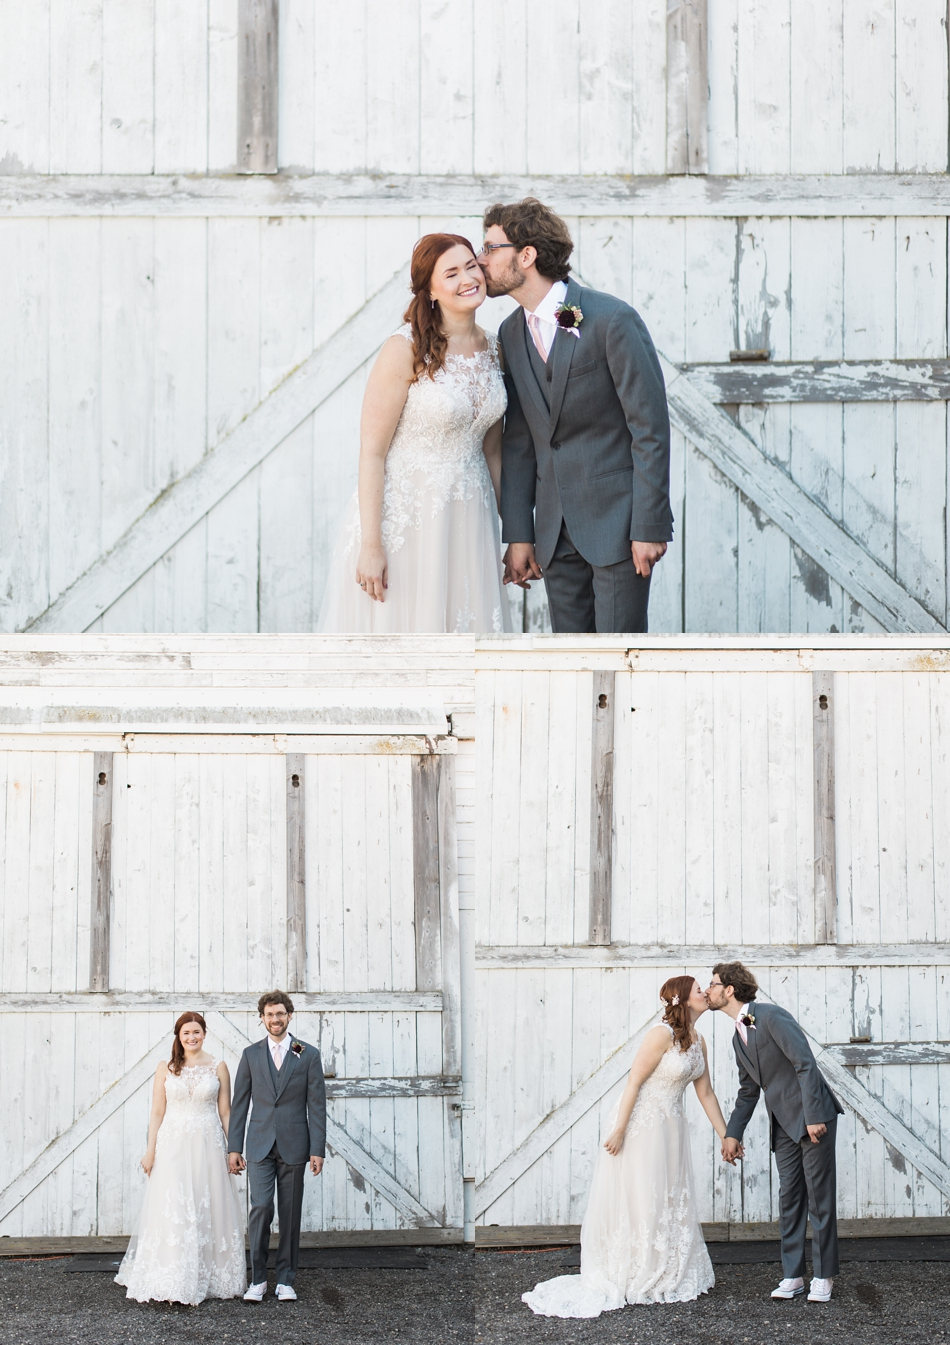 Photo of bride and groom in front of white-wash barn at Snohomish Wedding Venue Dairyland Barn near Seattle | Joanna Monger Photography